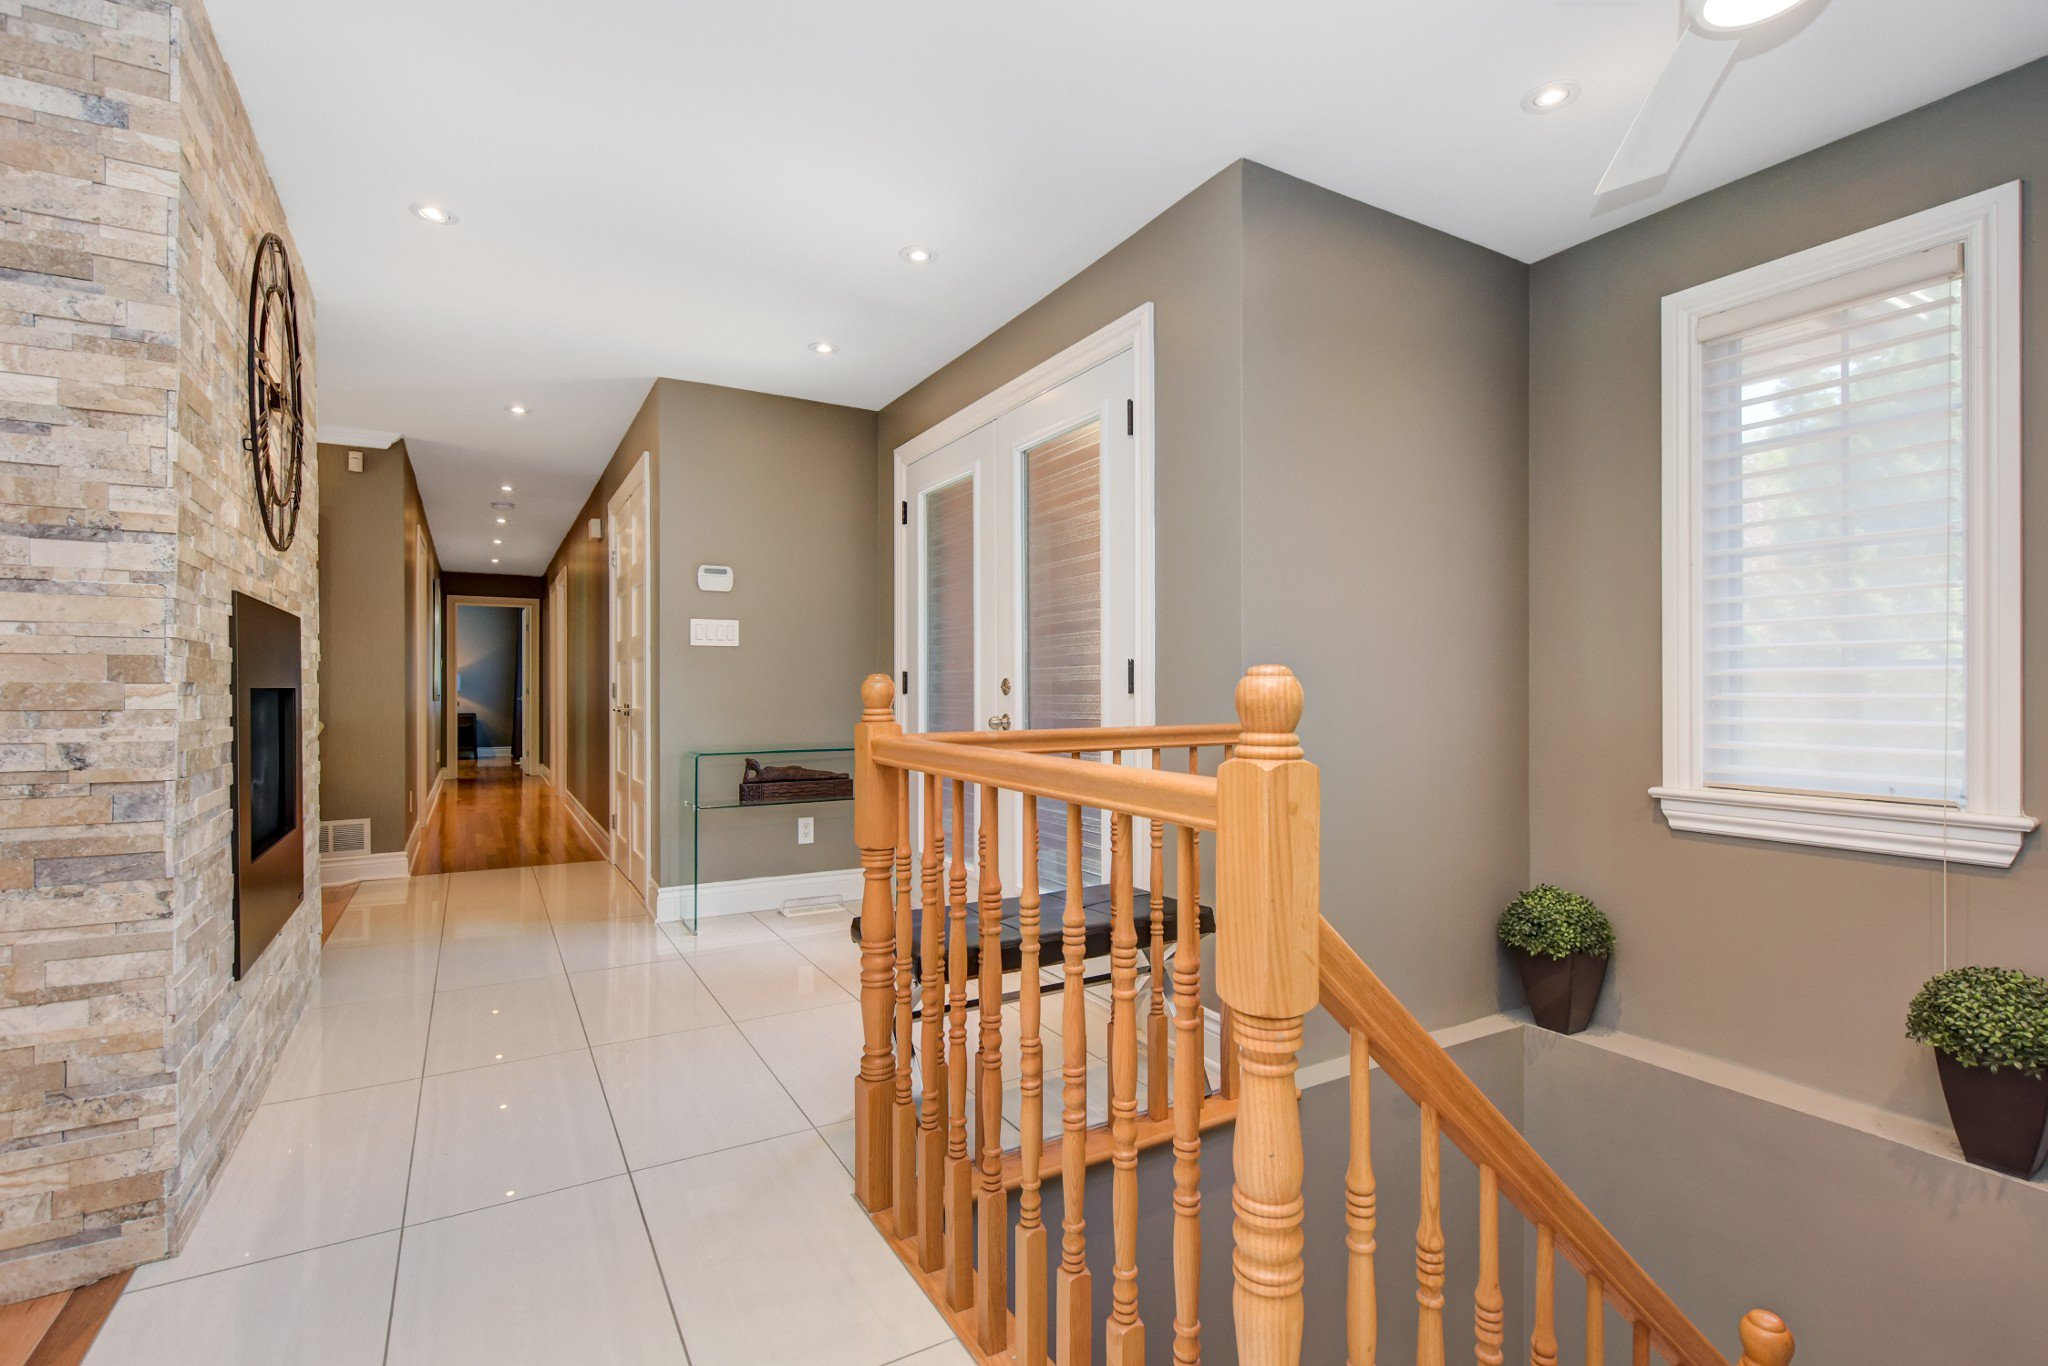 Photo 9: Photos: 1490 REINDEER WAY.: Greely House for sale (Ottawa)  : MLS®# 1109530